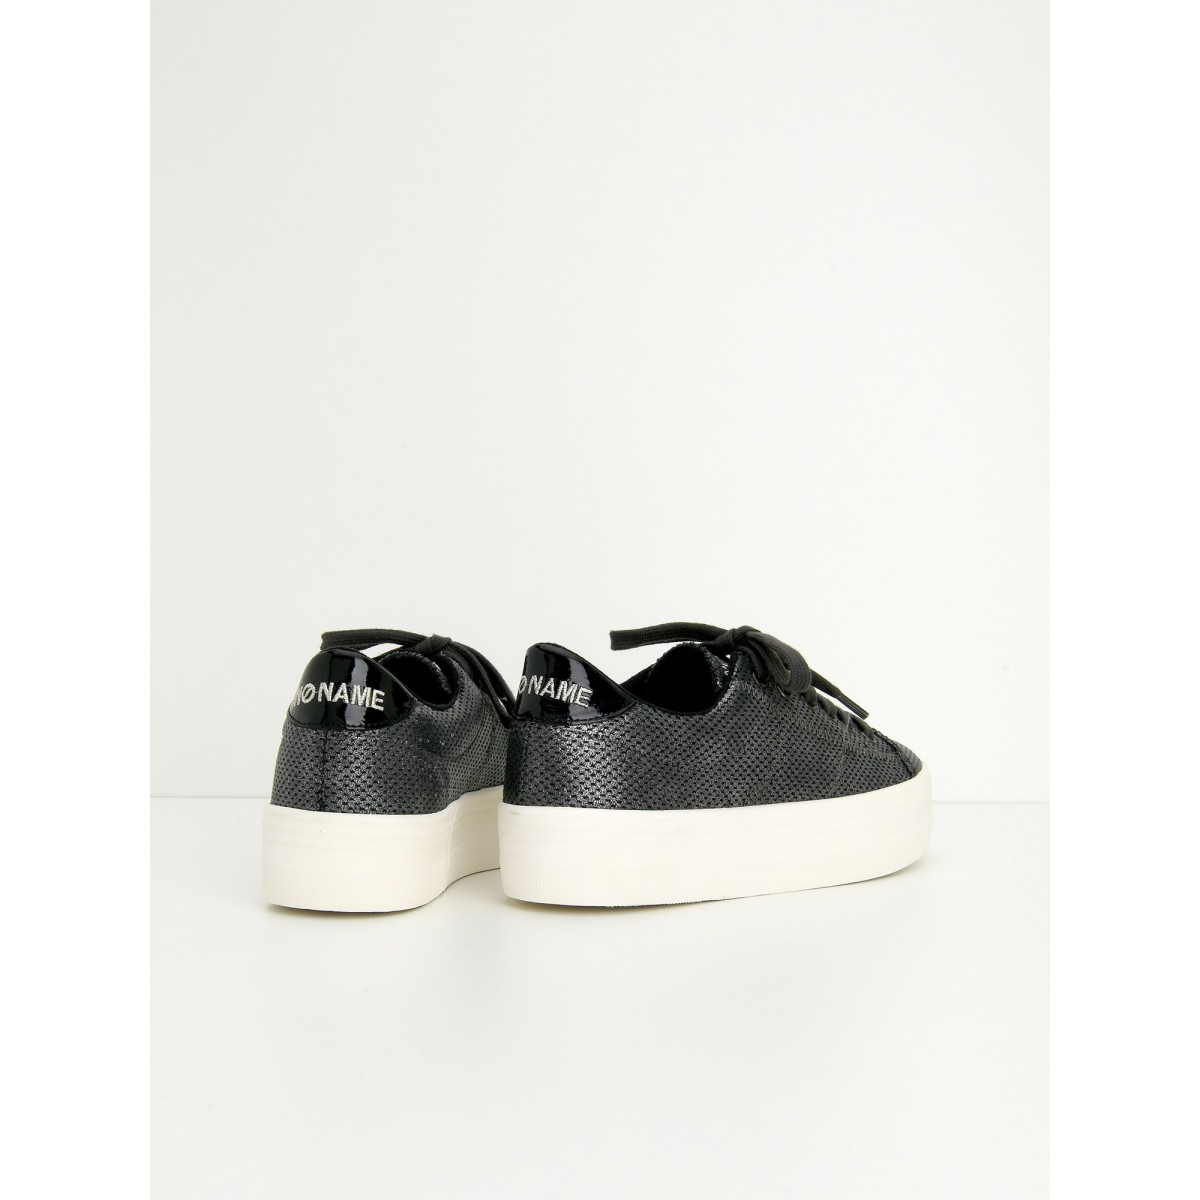 No Name PLATO SNEAKER - LUNA - GRAPHITE